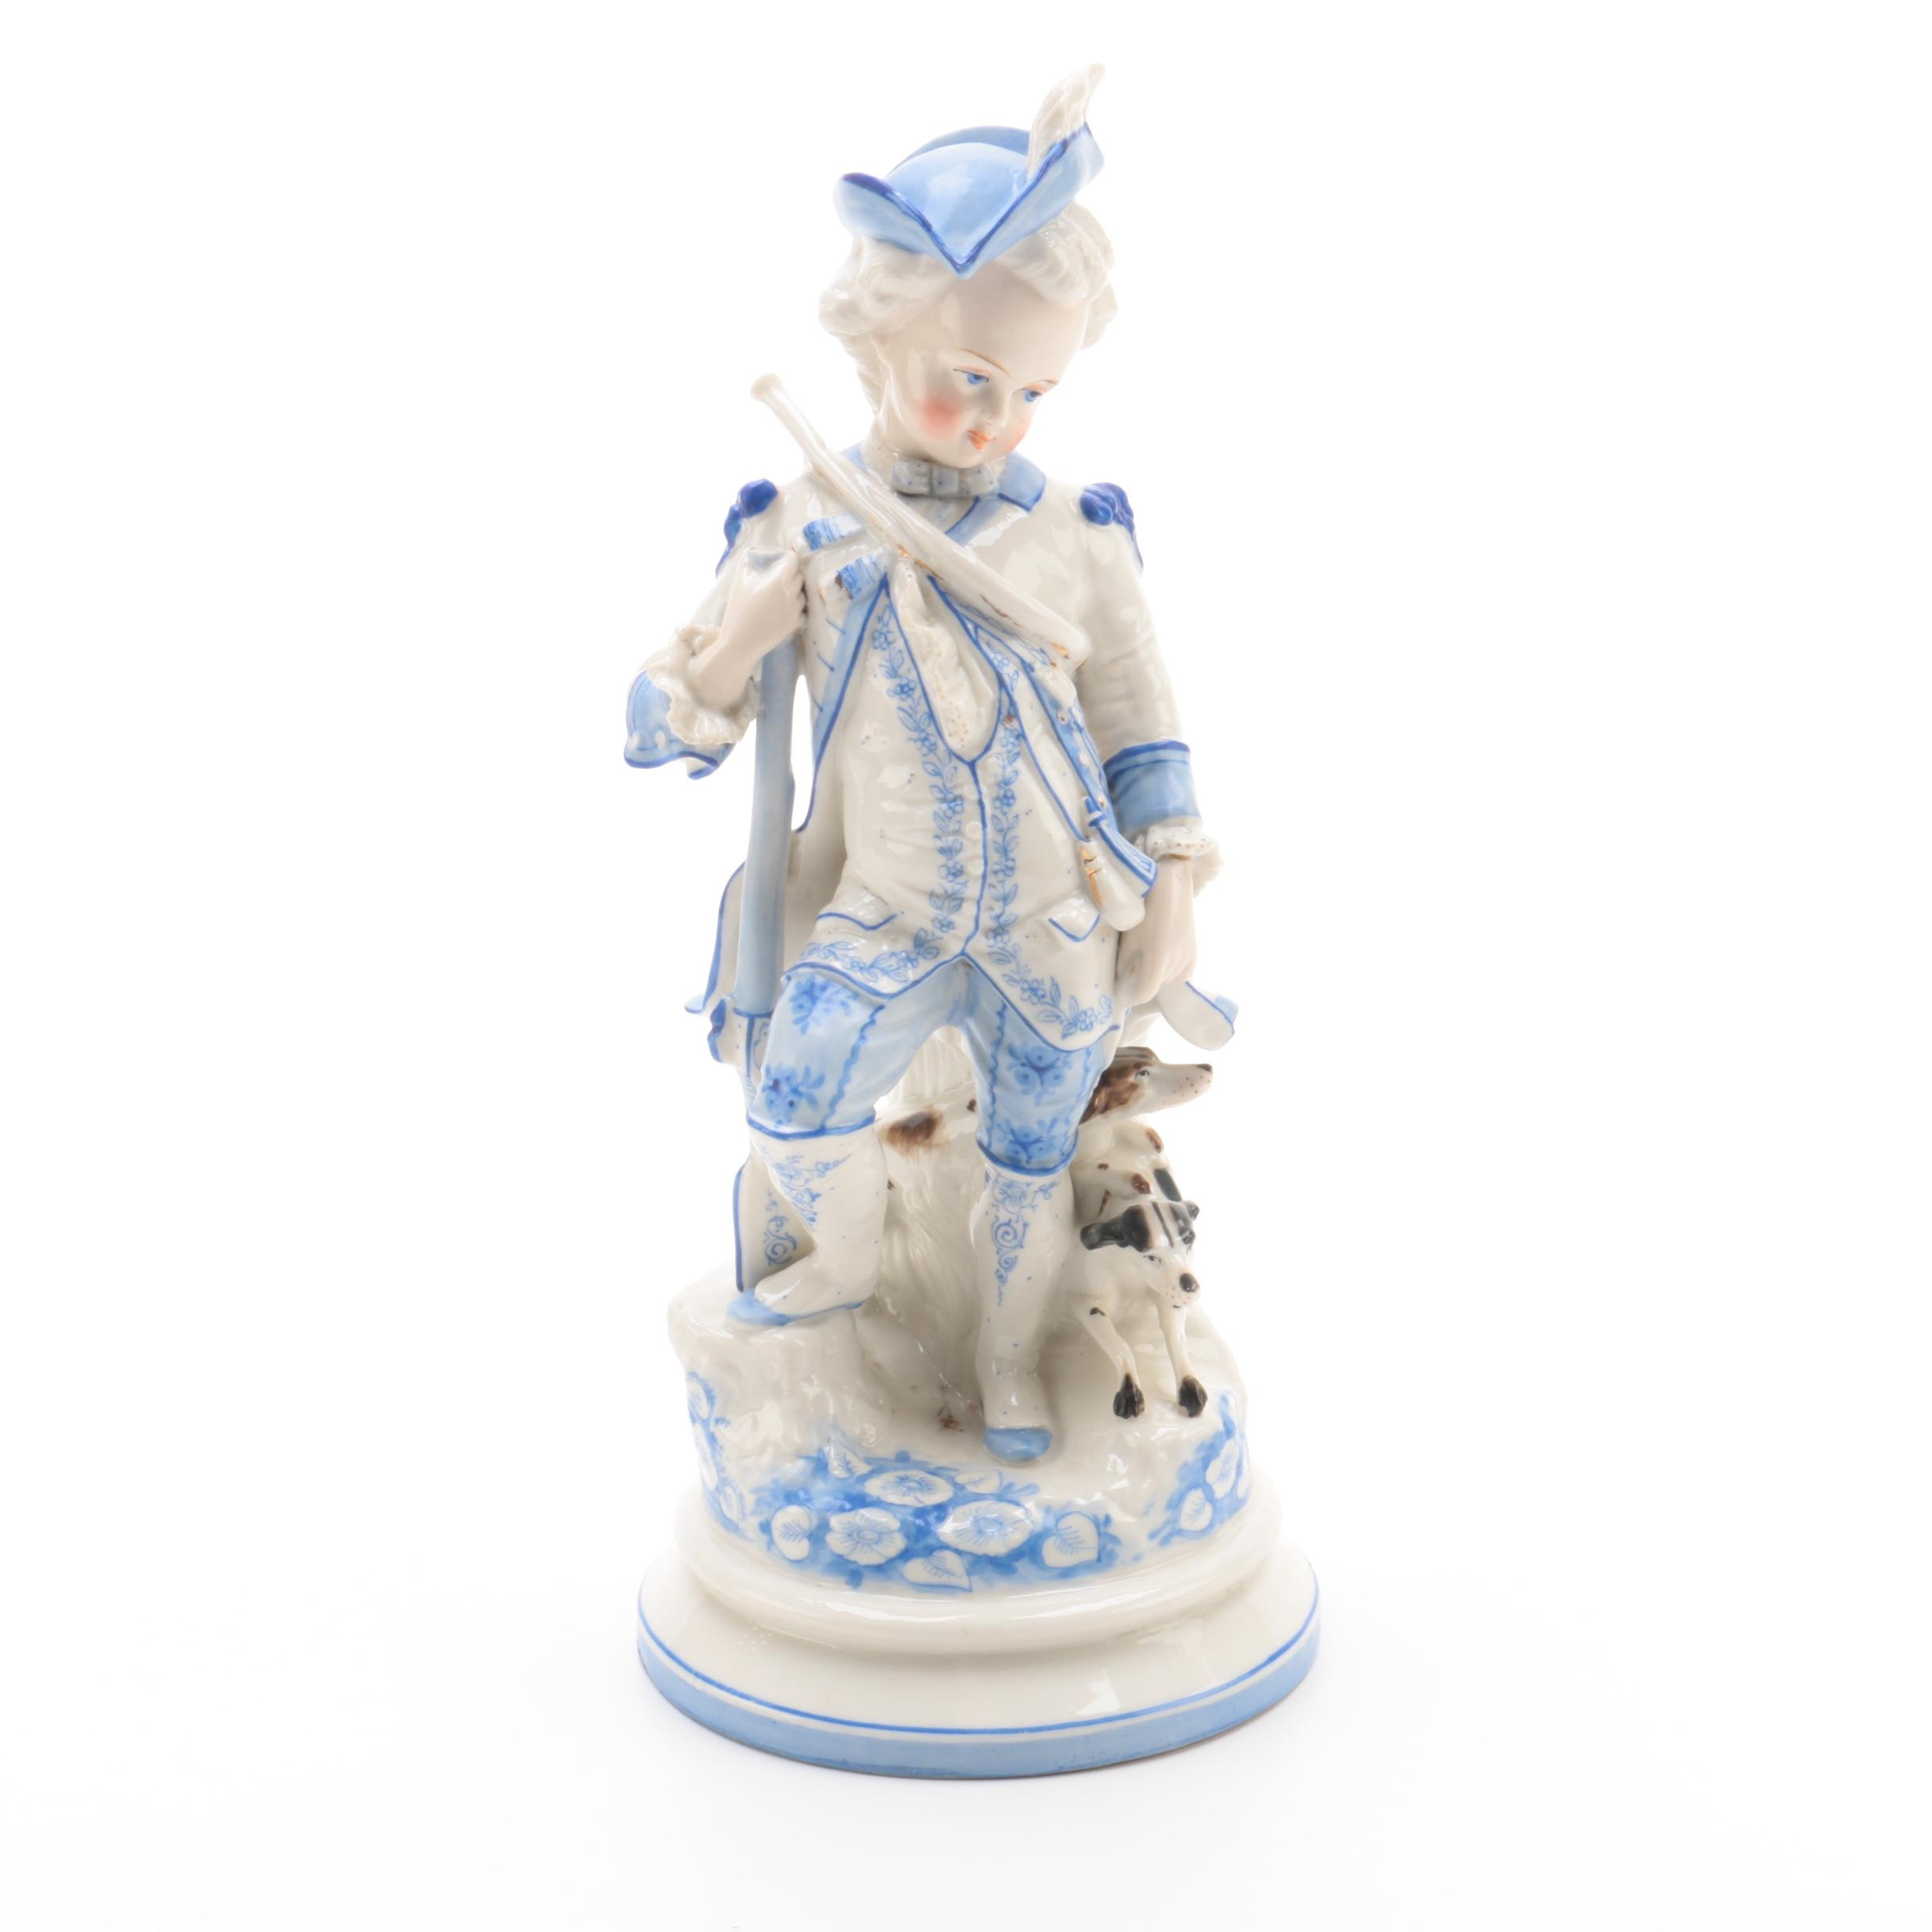 18th Century Style Figurine of Boy with Dogs